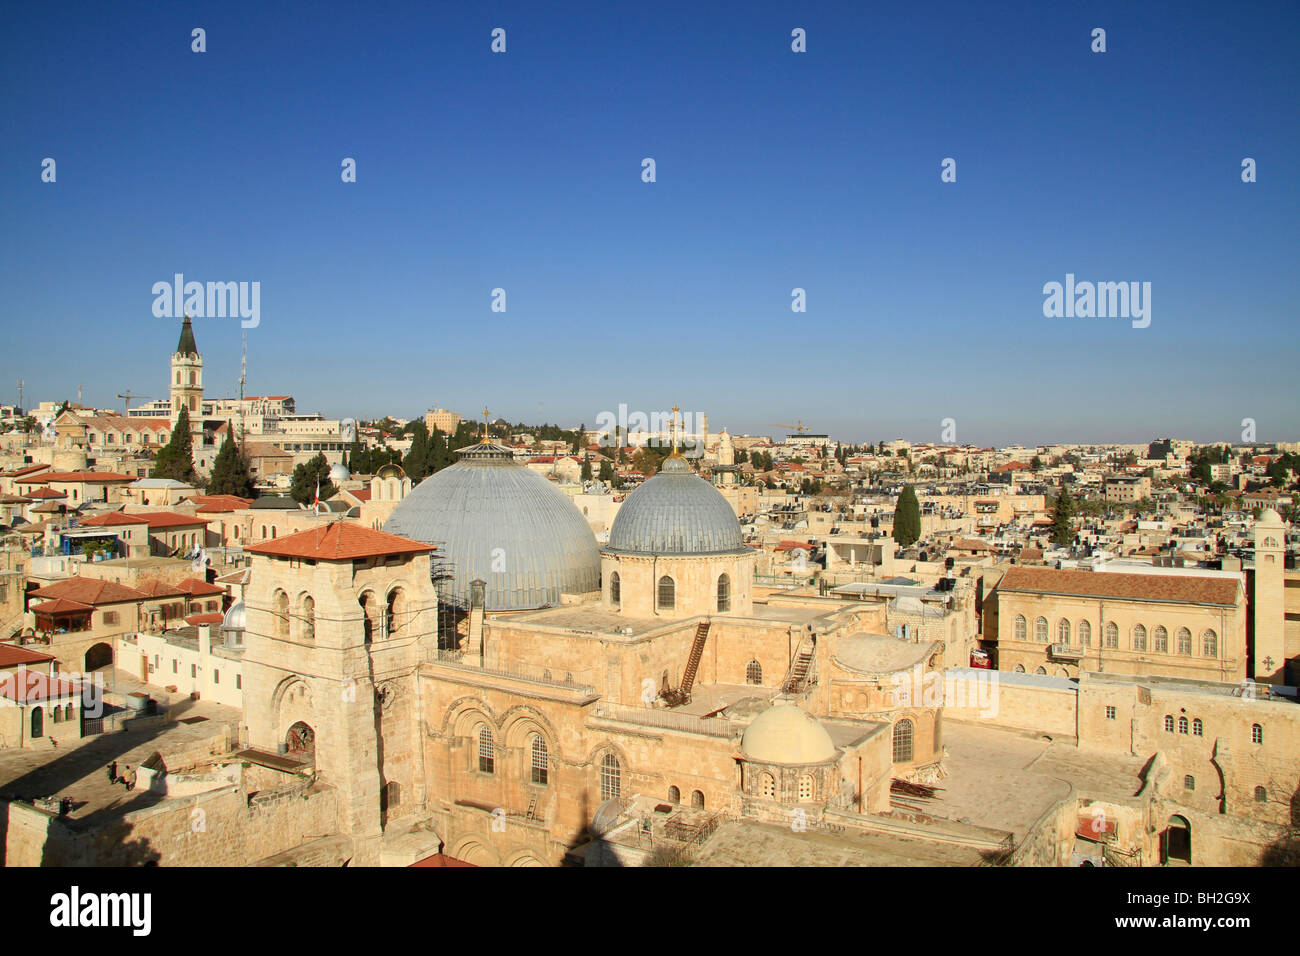 Israel, Jerusalem Old City, a view of the Church of the Holy Sepulchre from the bell tower of the Church of the - Stock Image